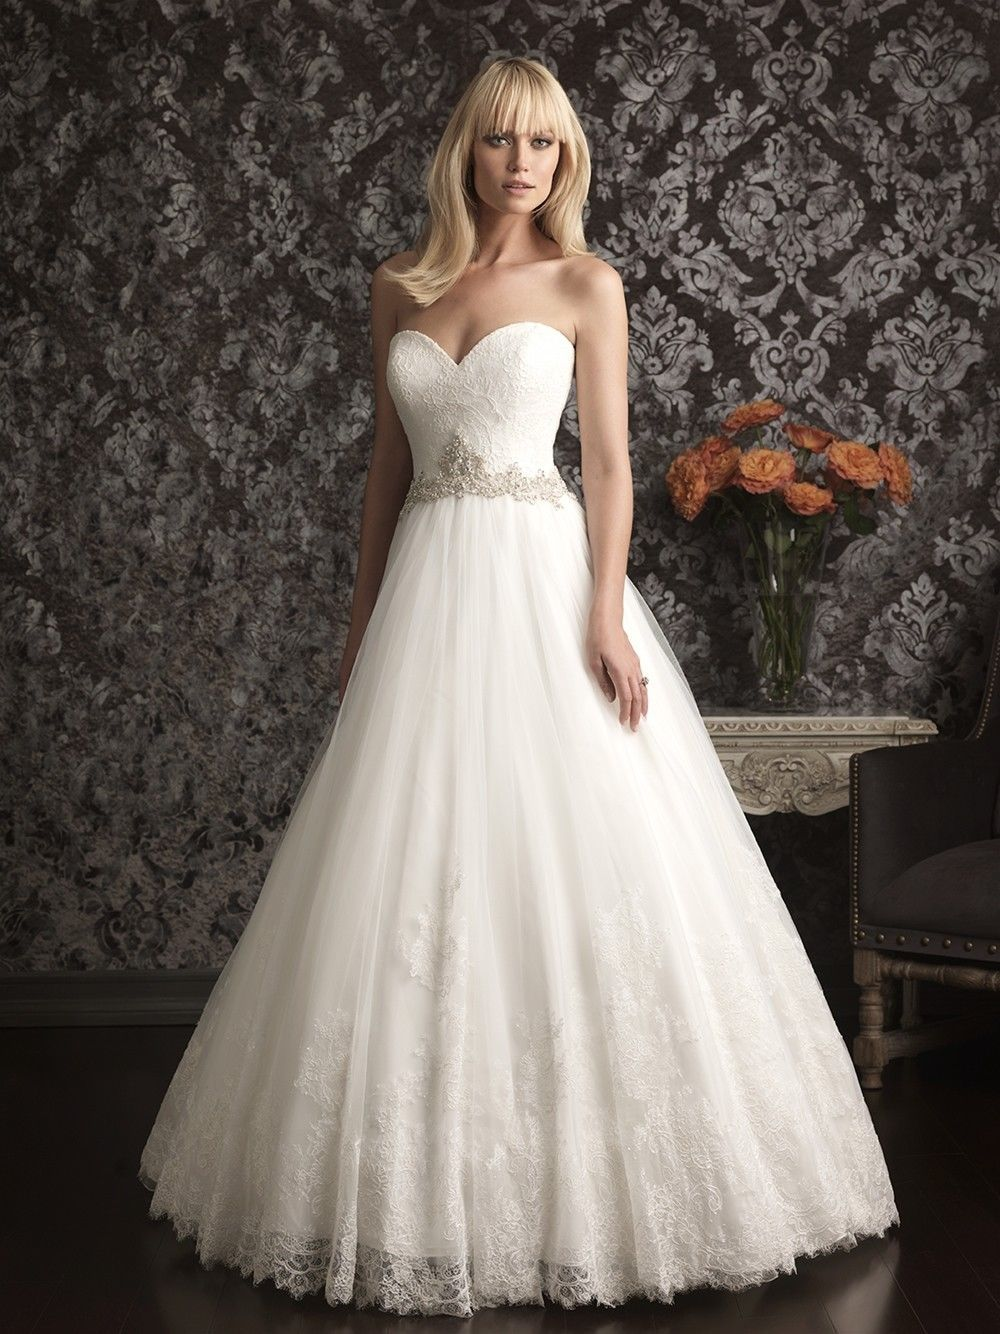 Lace sweetheart wedding dress  Allure Bridals  Wedding Dress  Ivory  Sz   ALine Ball Gown